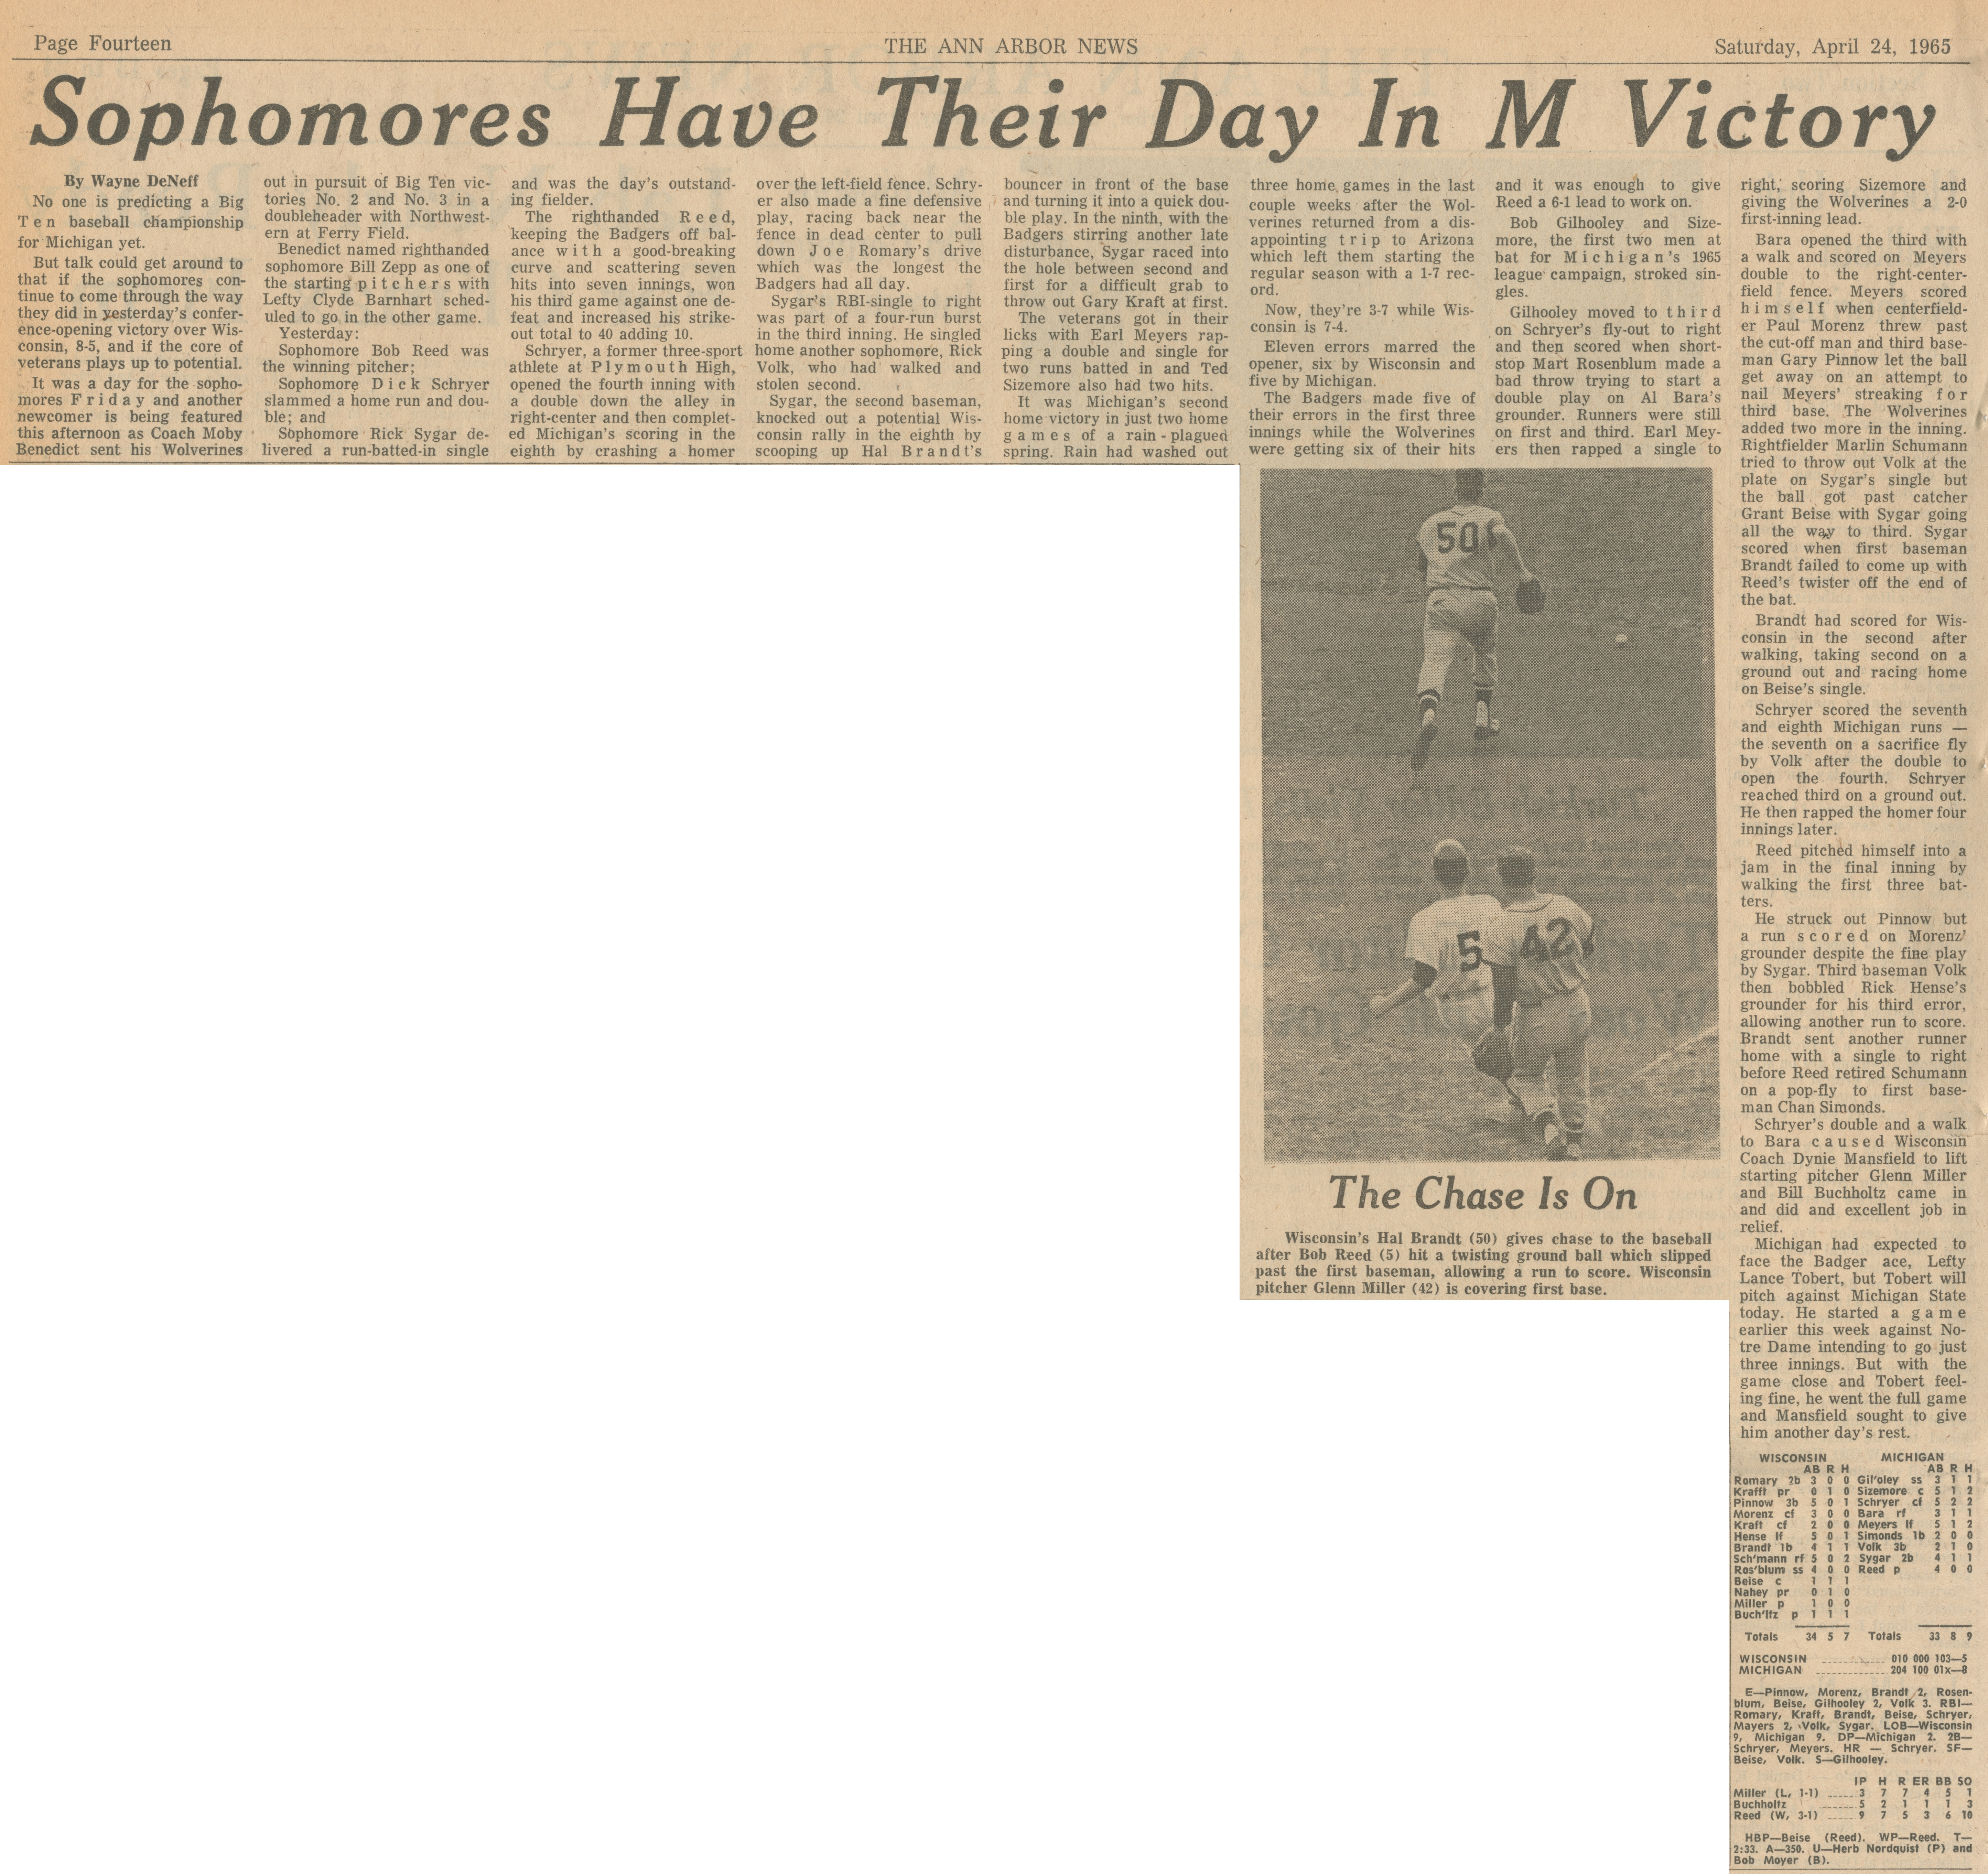 Sophomores Have Their Day In M Victory image